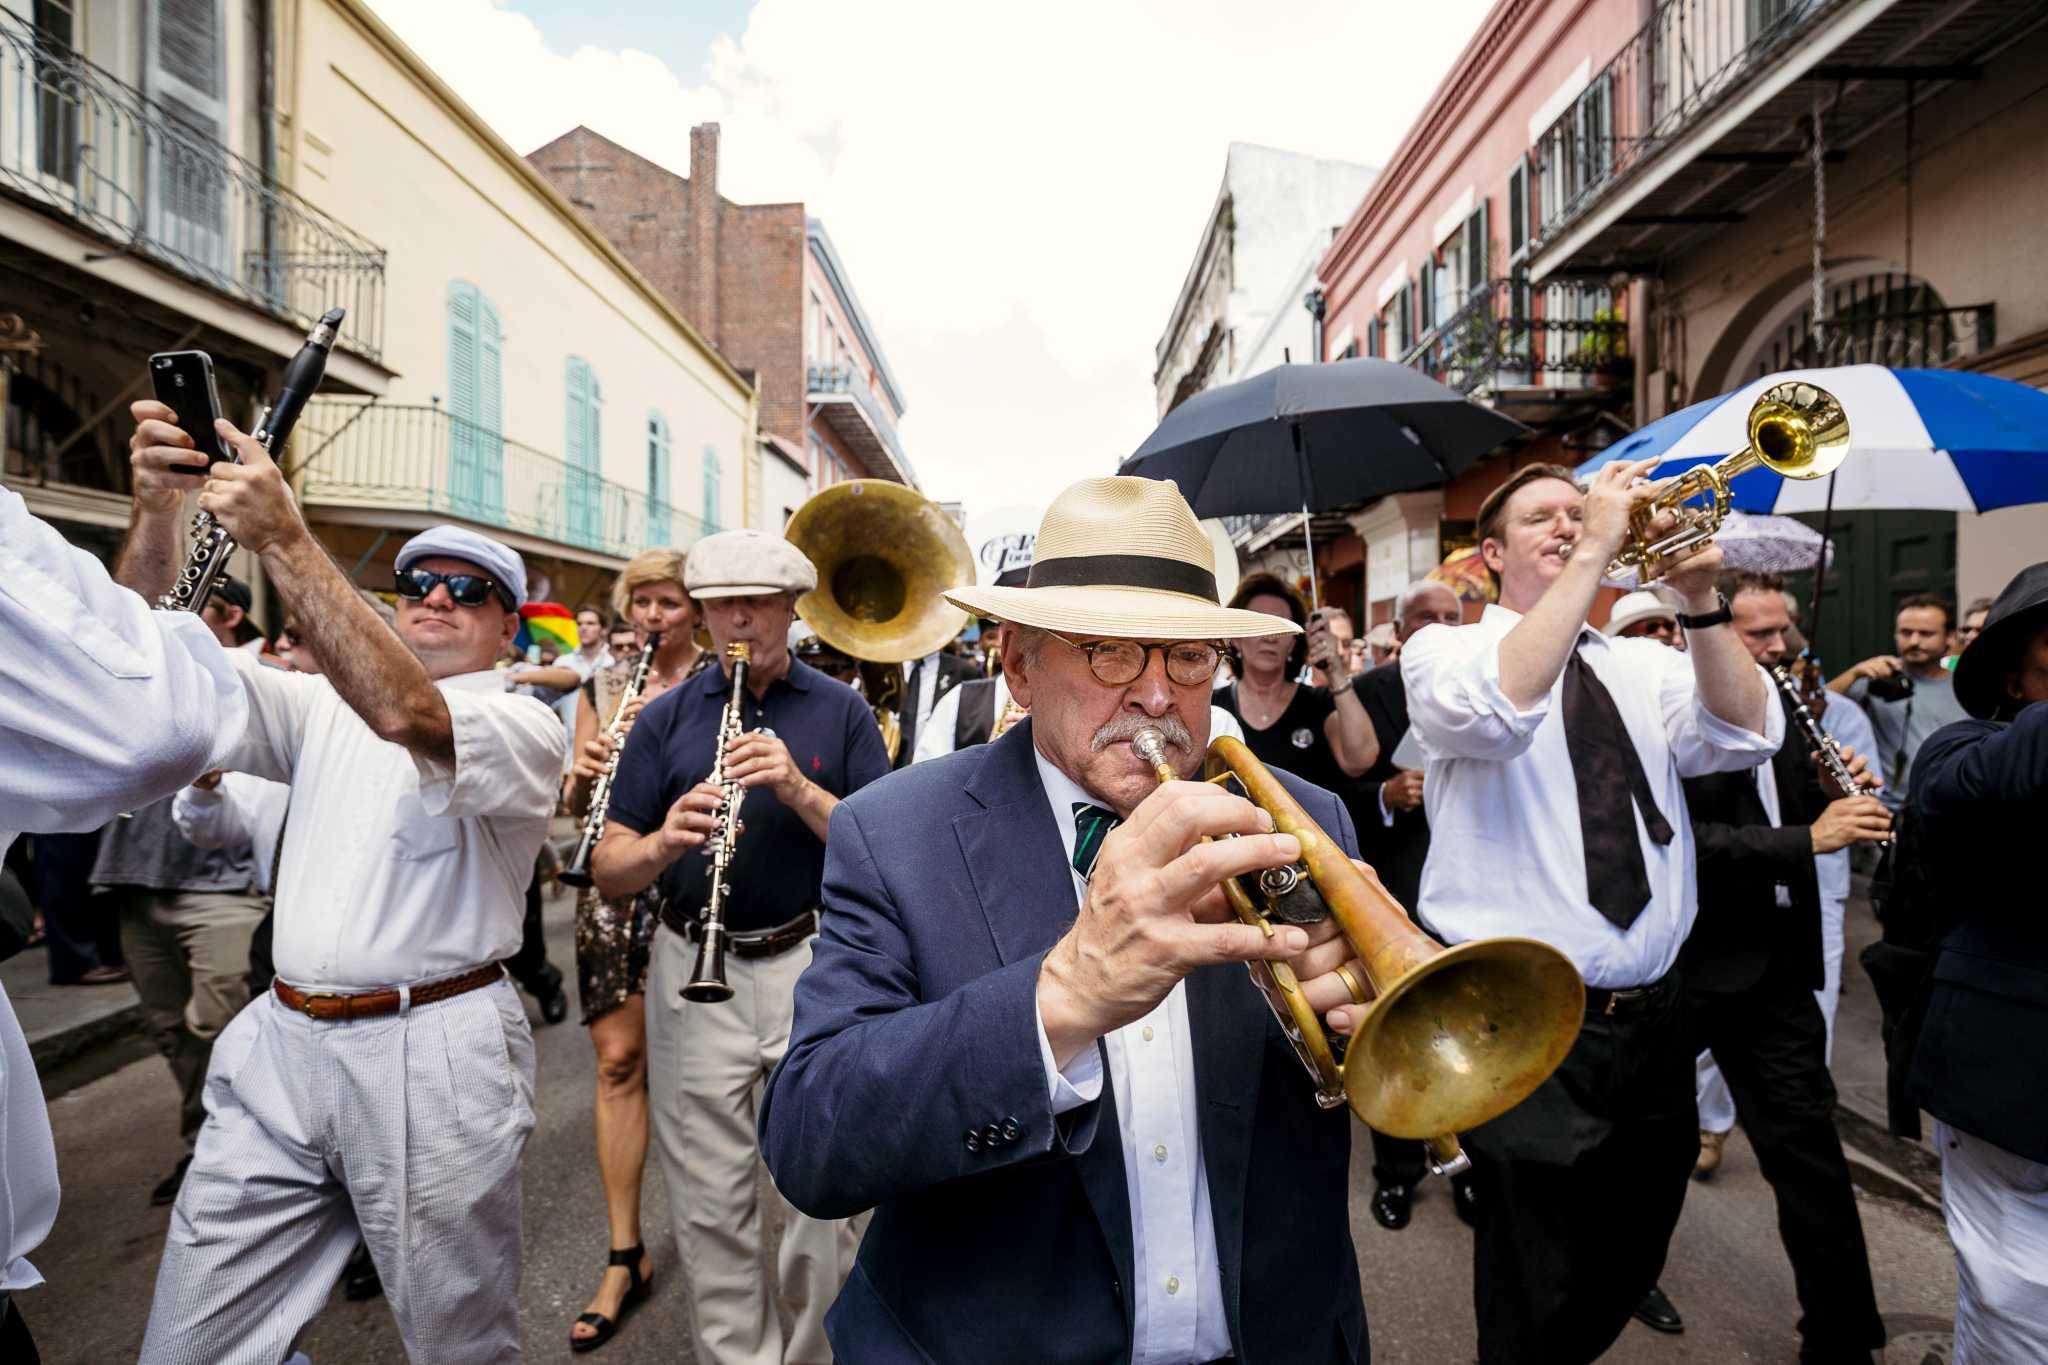 Jim Cullum's memorial will have live music, second line